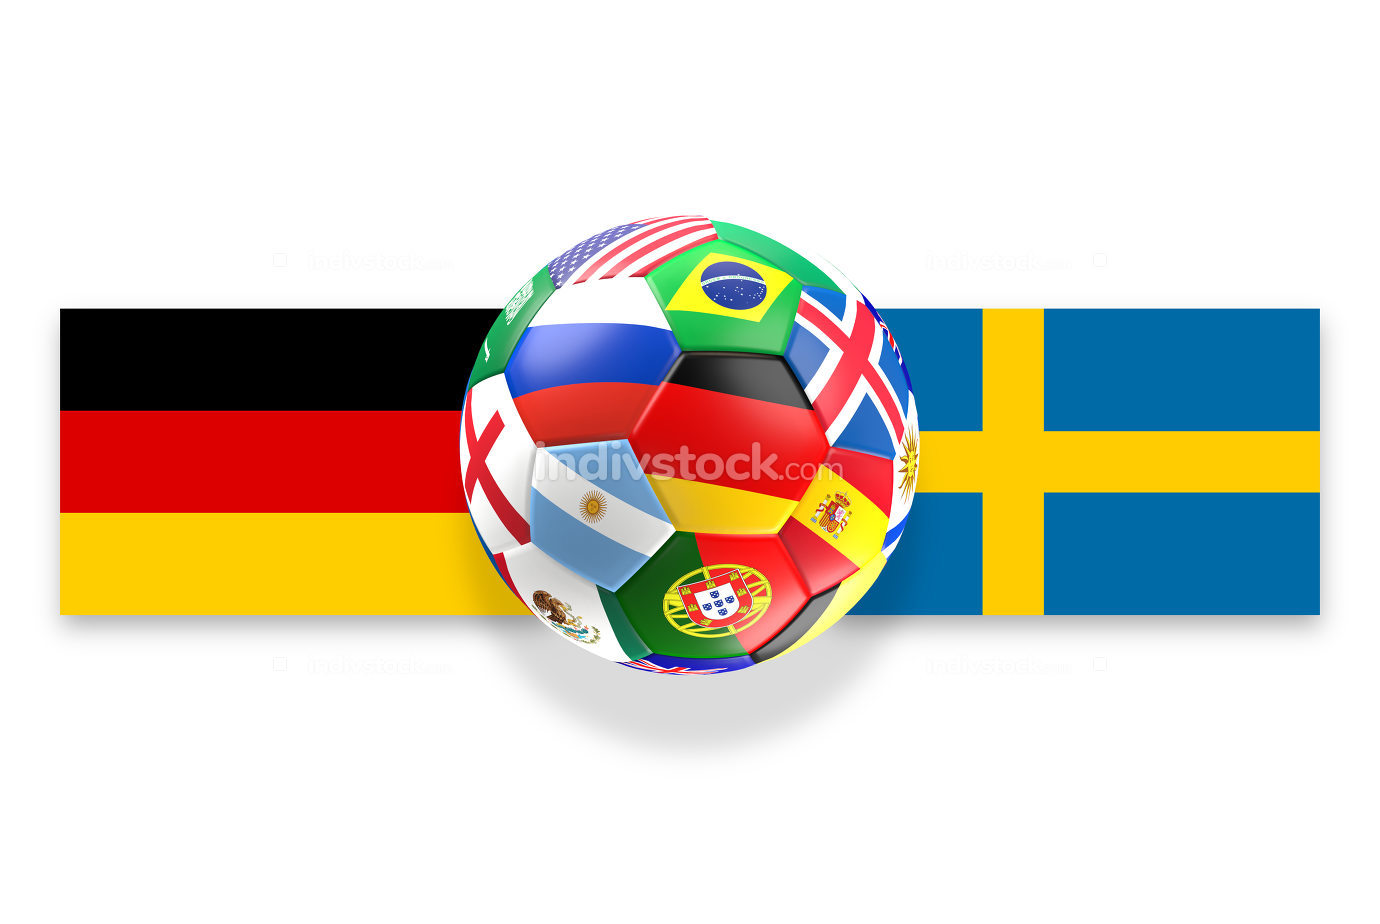 Germany Sweden soccer ball 3d rendering with Russia